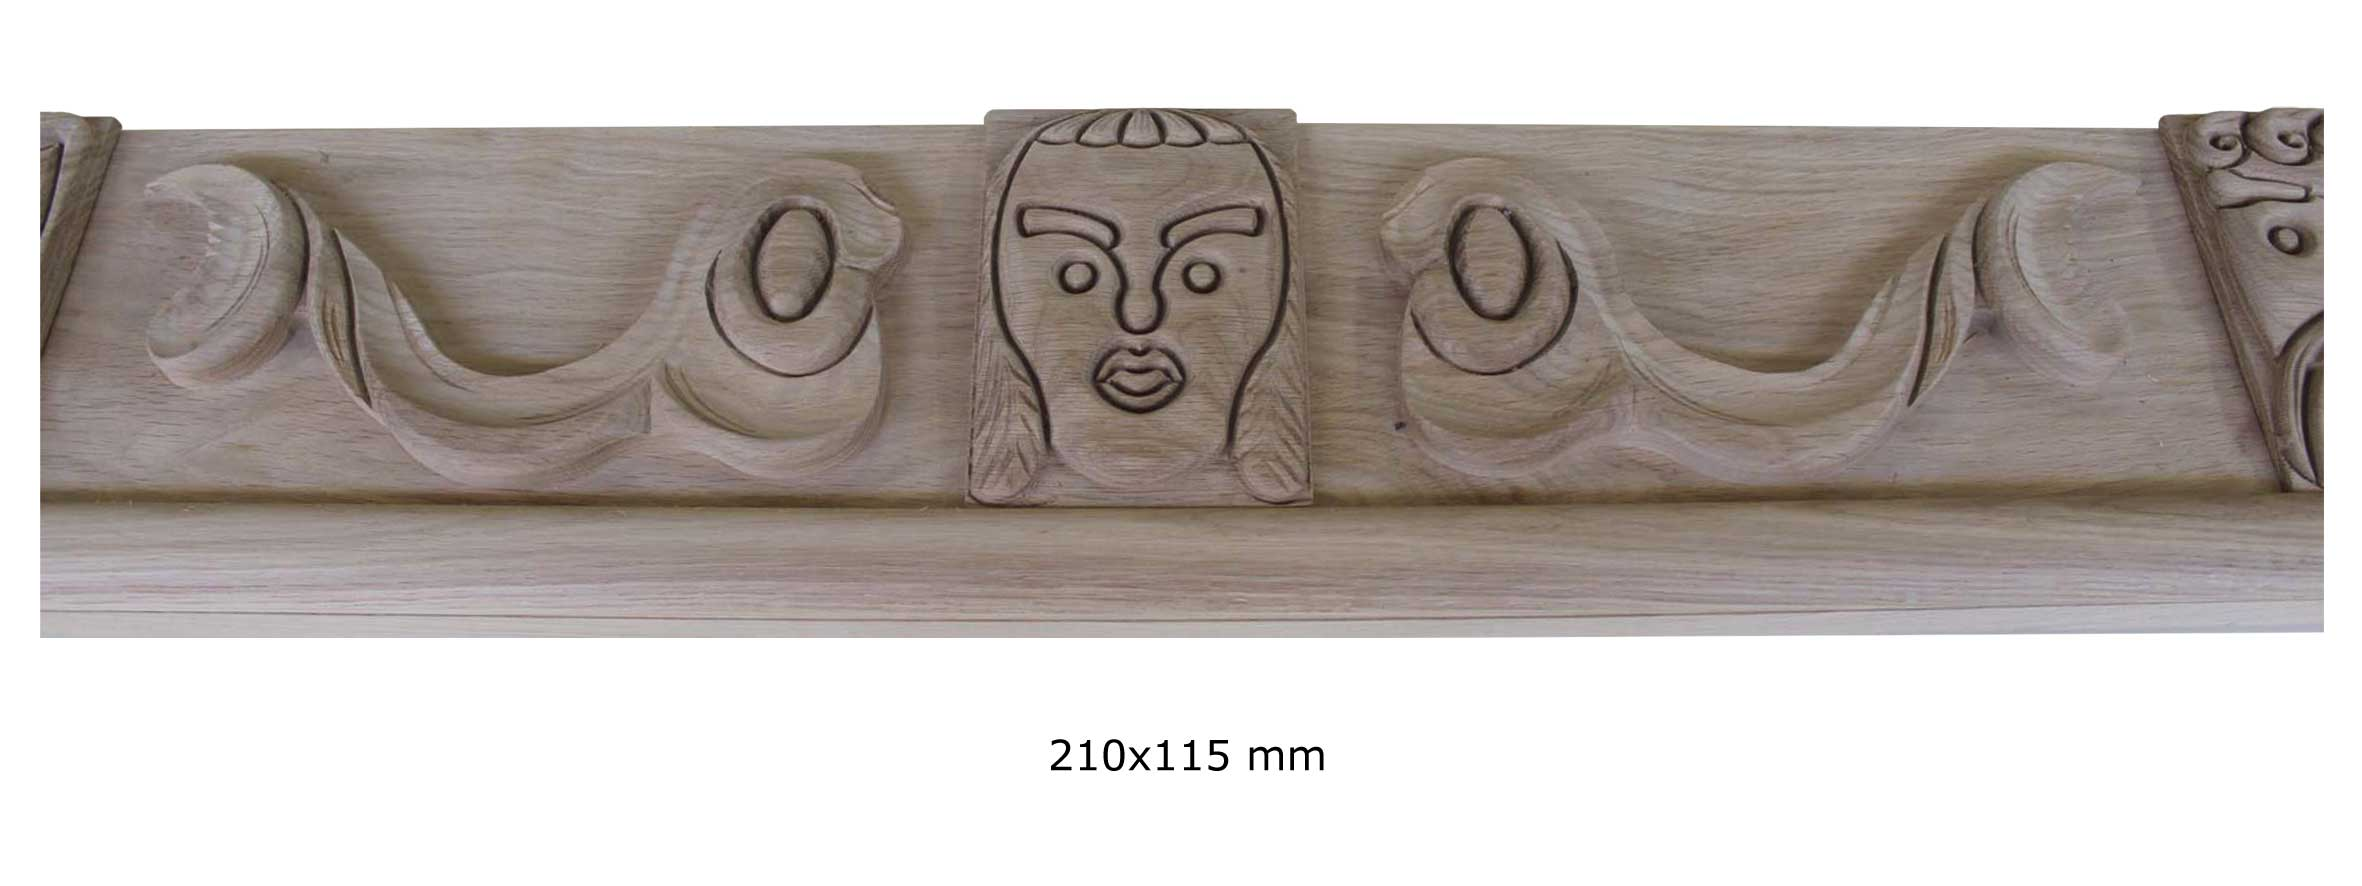 Detail of ornamental moulding in solid oak